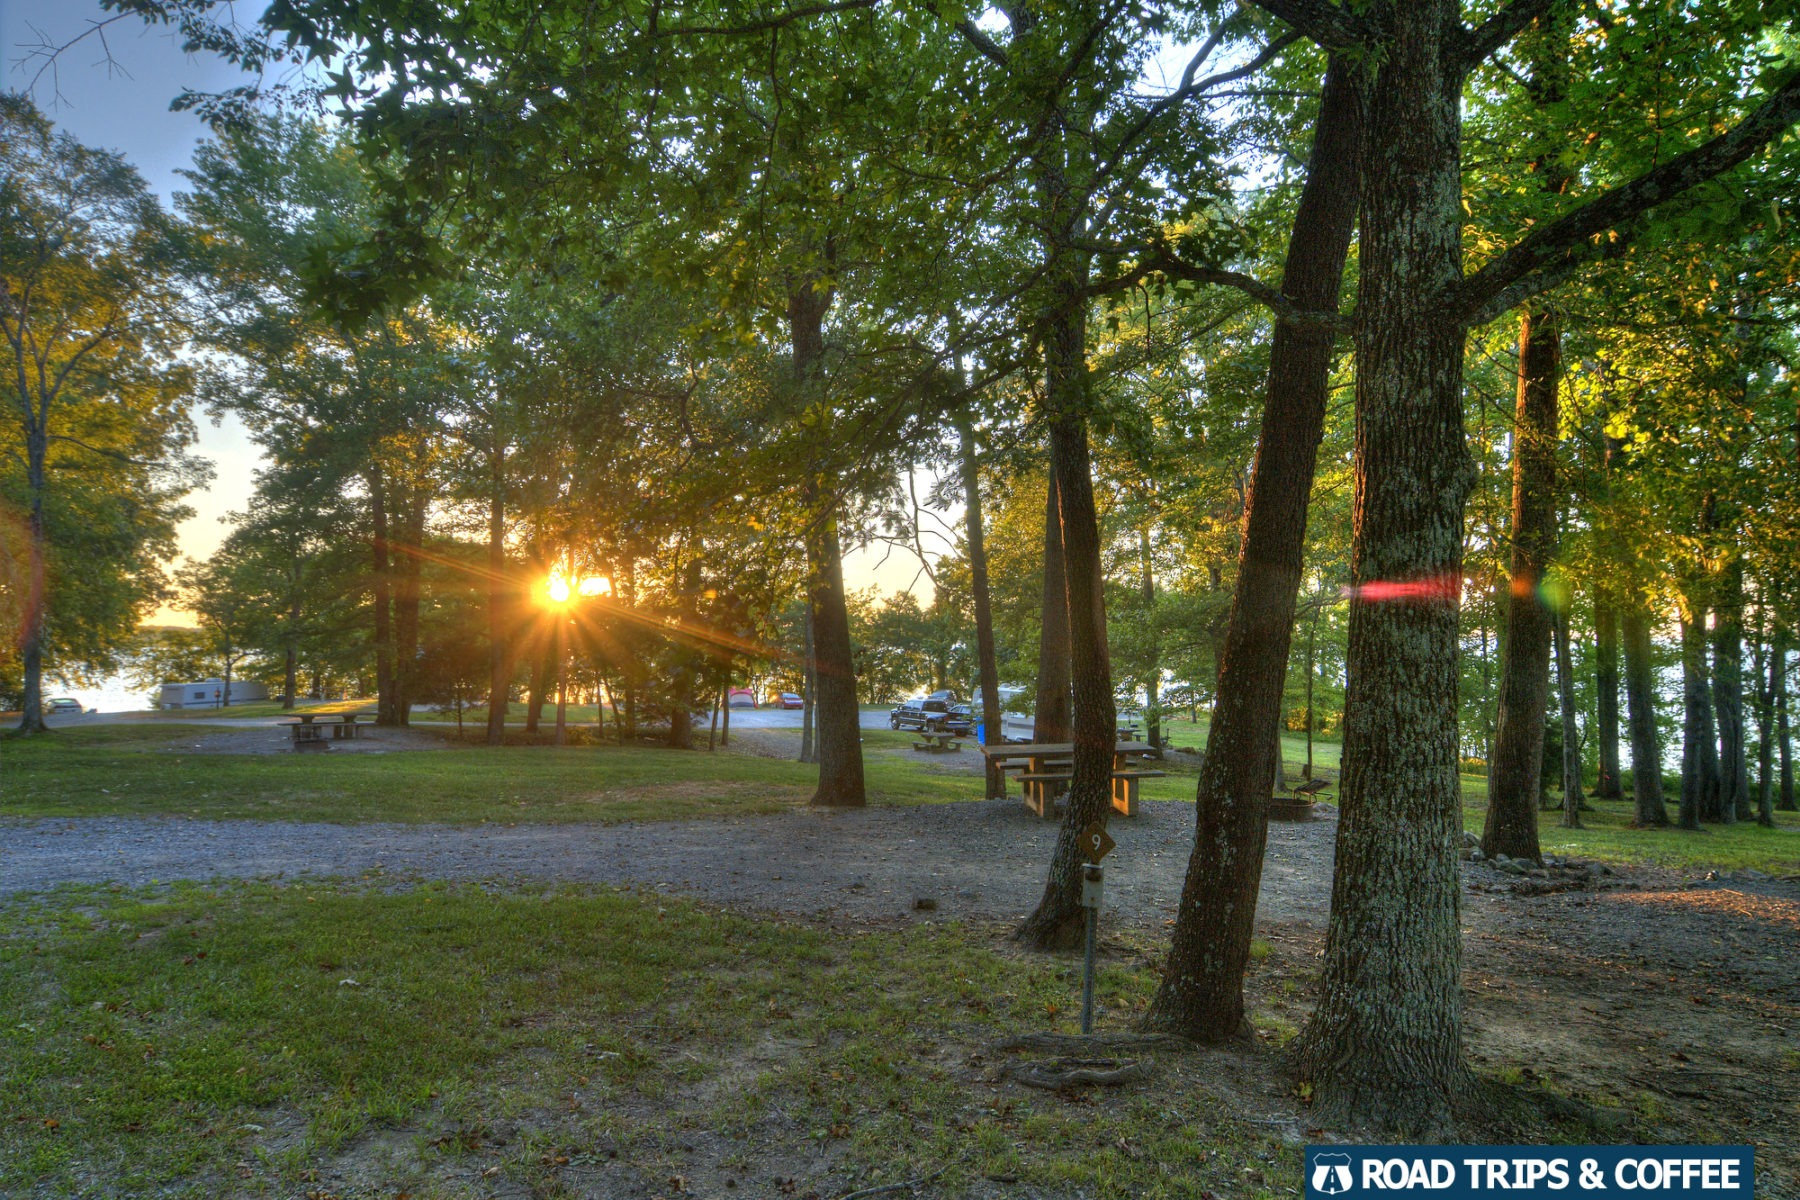 Sunset over the loosely defined campstites at Boswell Landing Basic Campground at Land Between the Lakes National Recreation Area